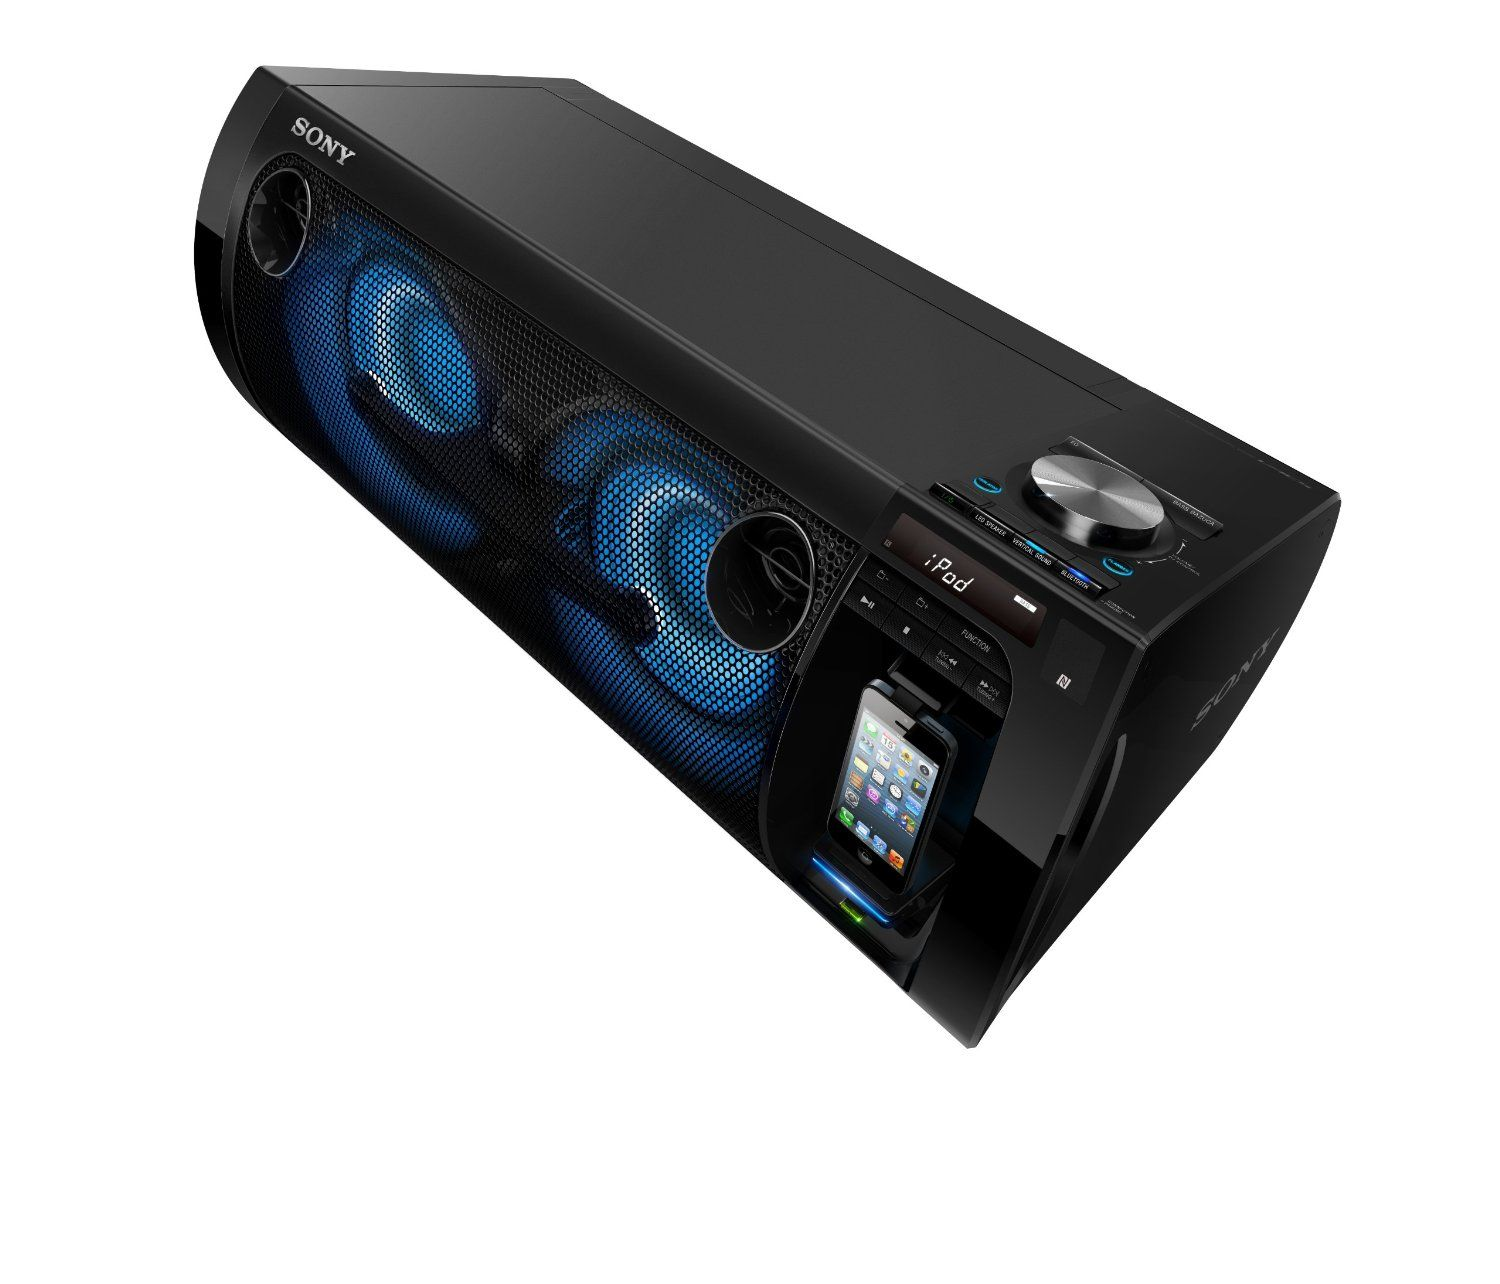 Sony Portable Party System Brings The Volume Wherever You Go Ipod Touch 5th Generation Ipod Nano Party Speakers